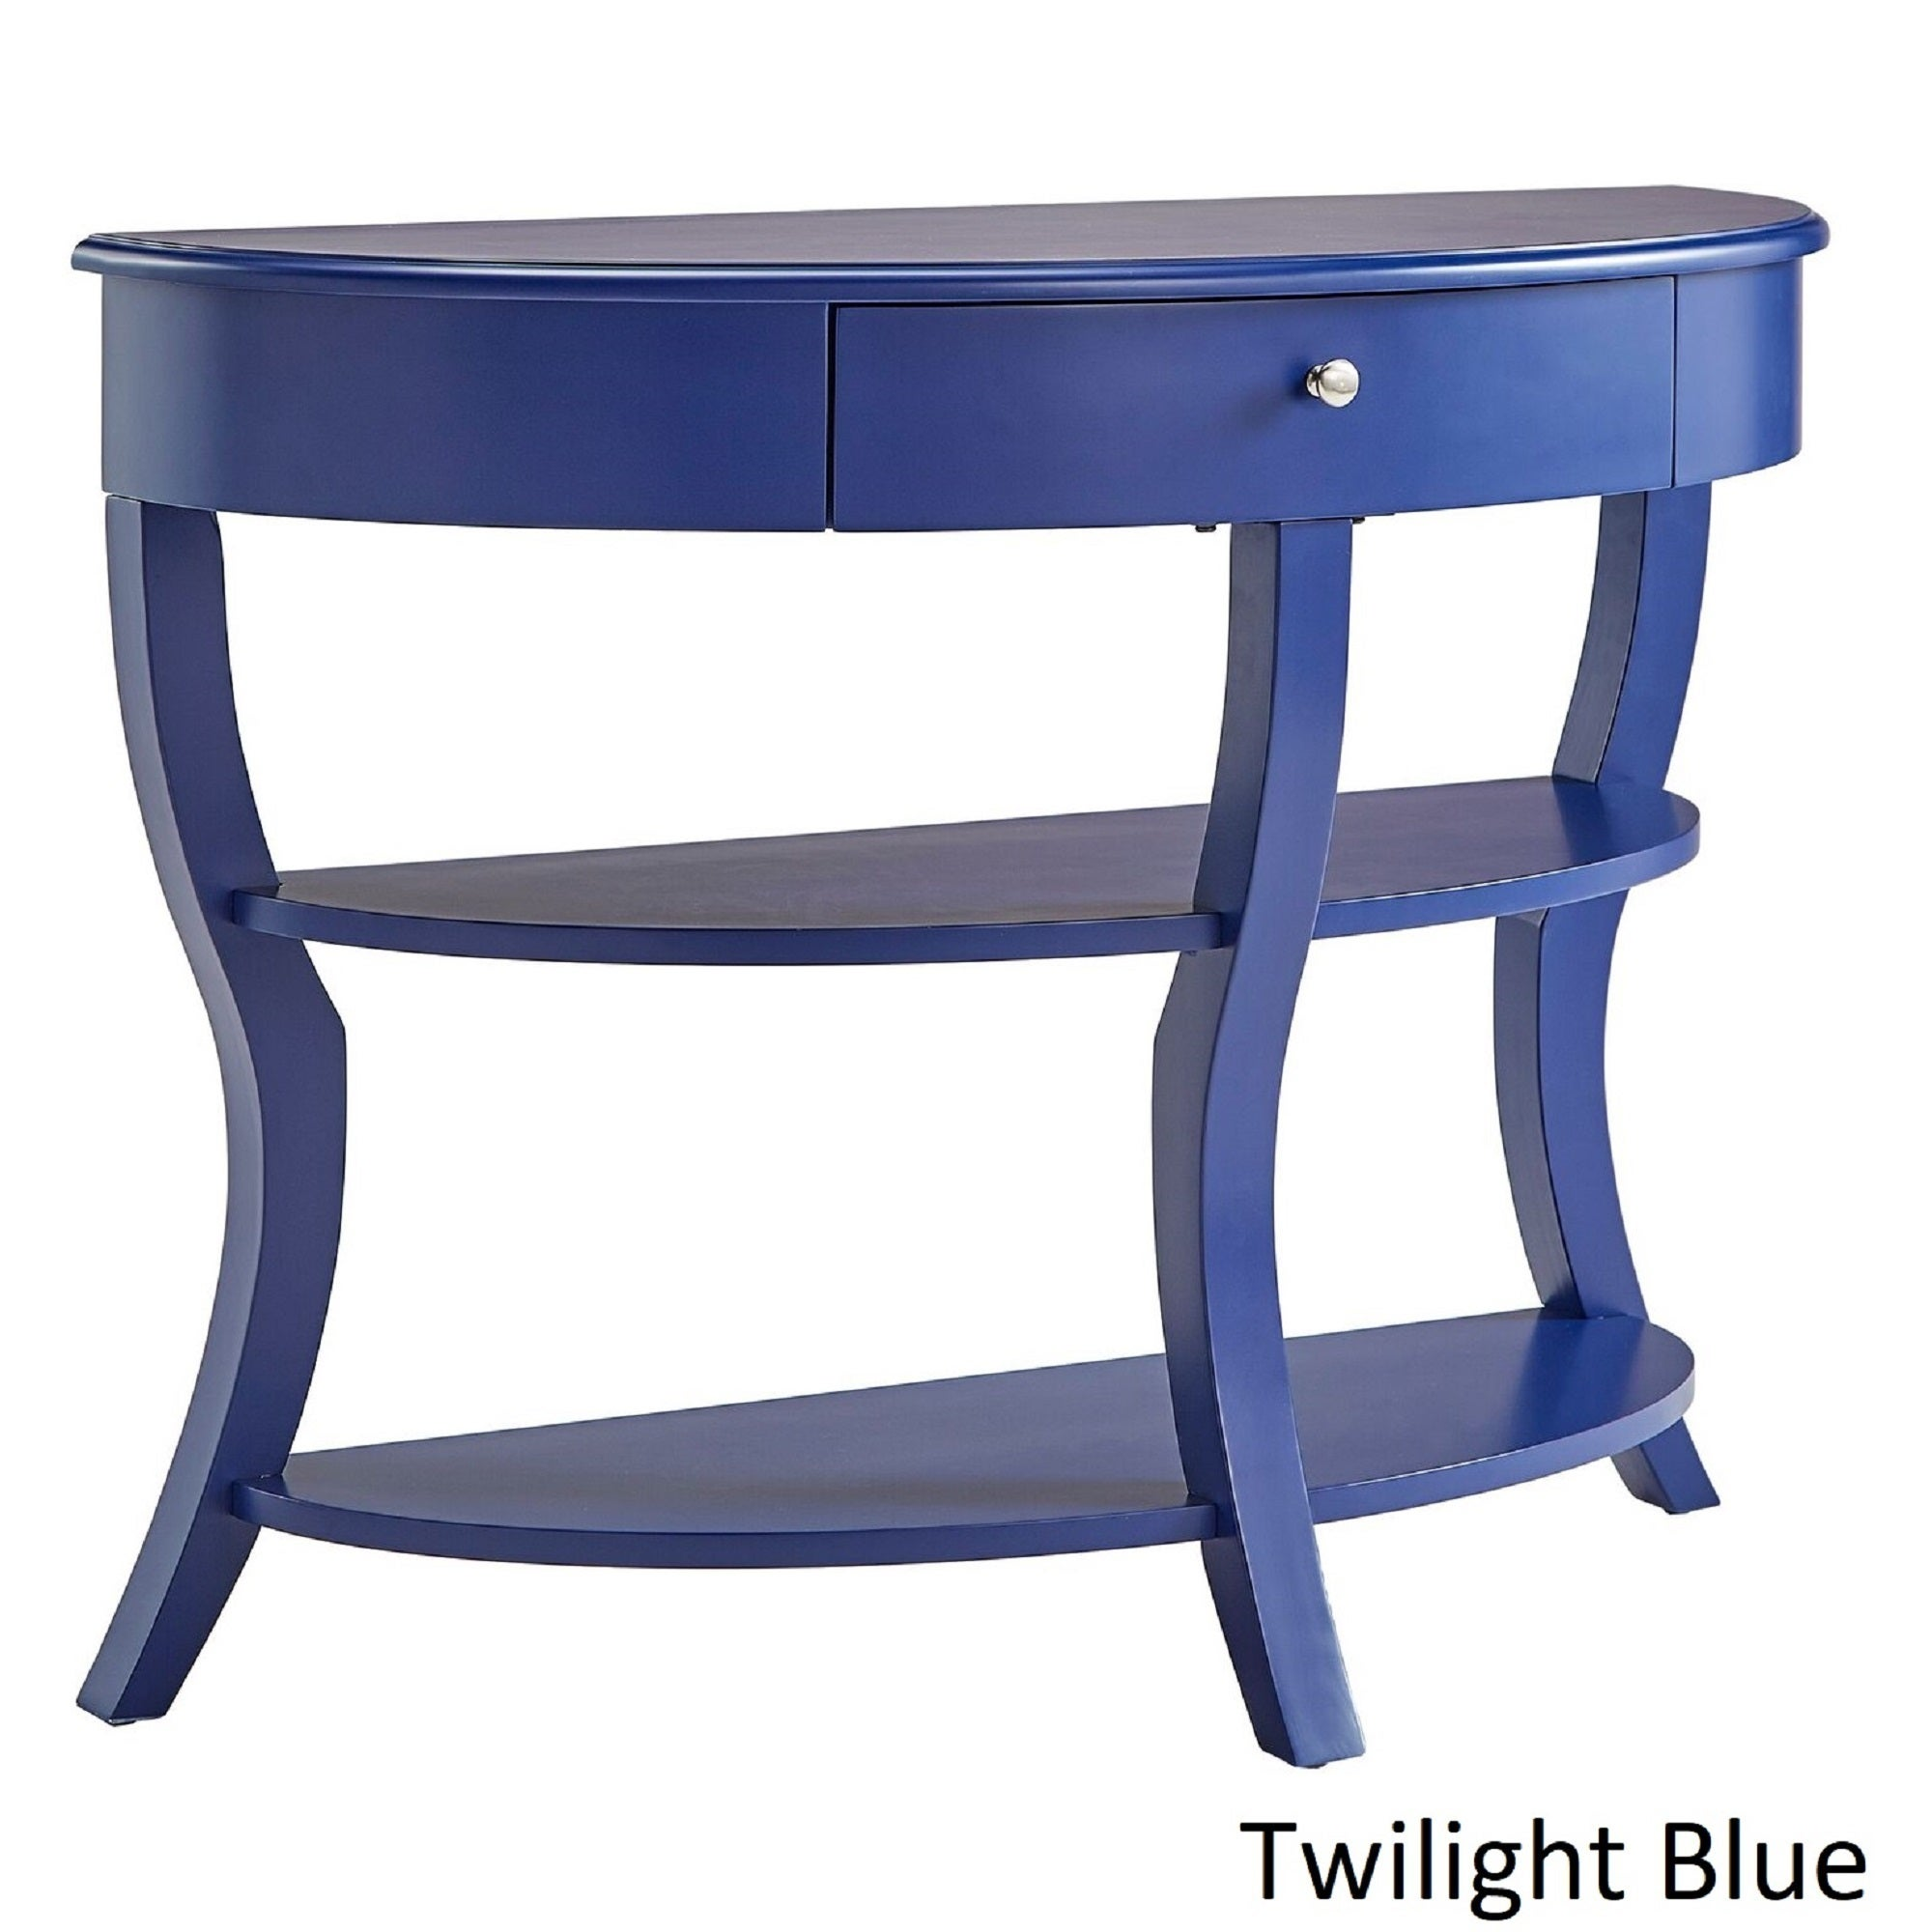 Burkhardt Rounded 1 Drawer Console Table Tv Stand By Inspire Q Bold On Free Shipping Today 16836911